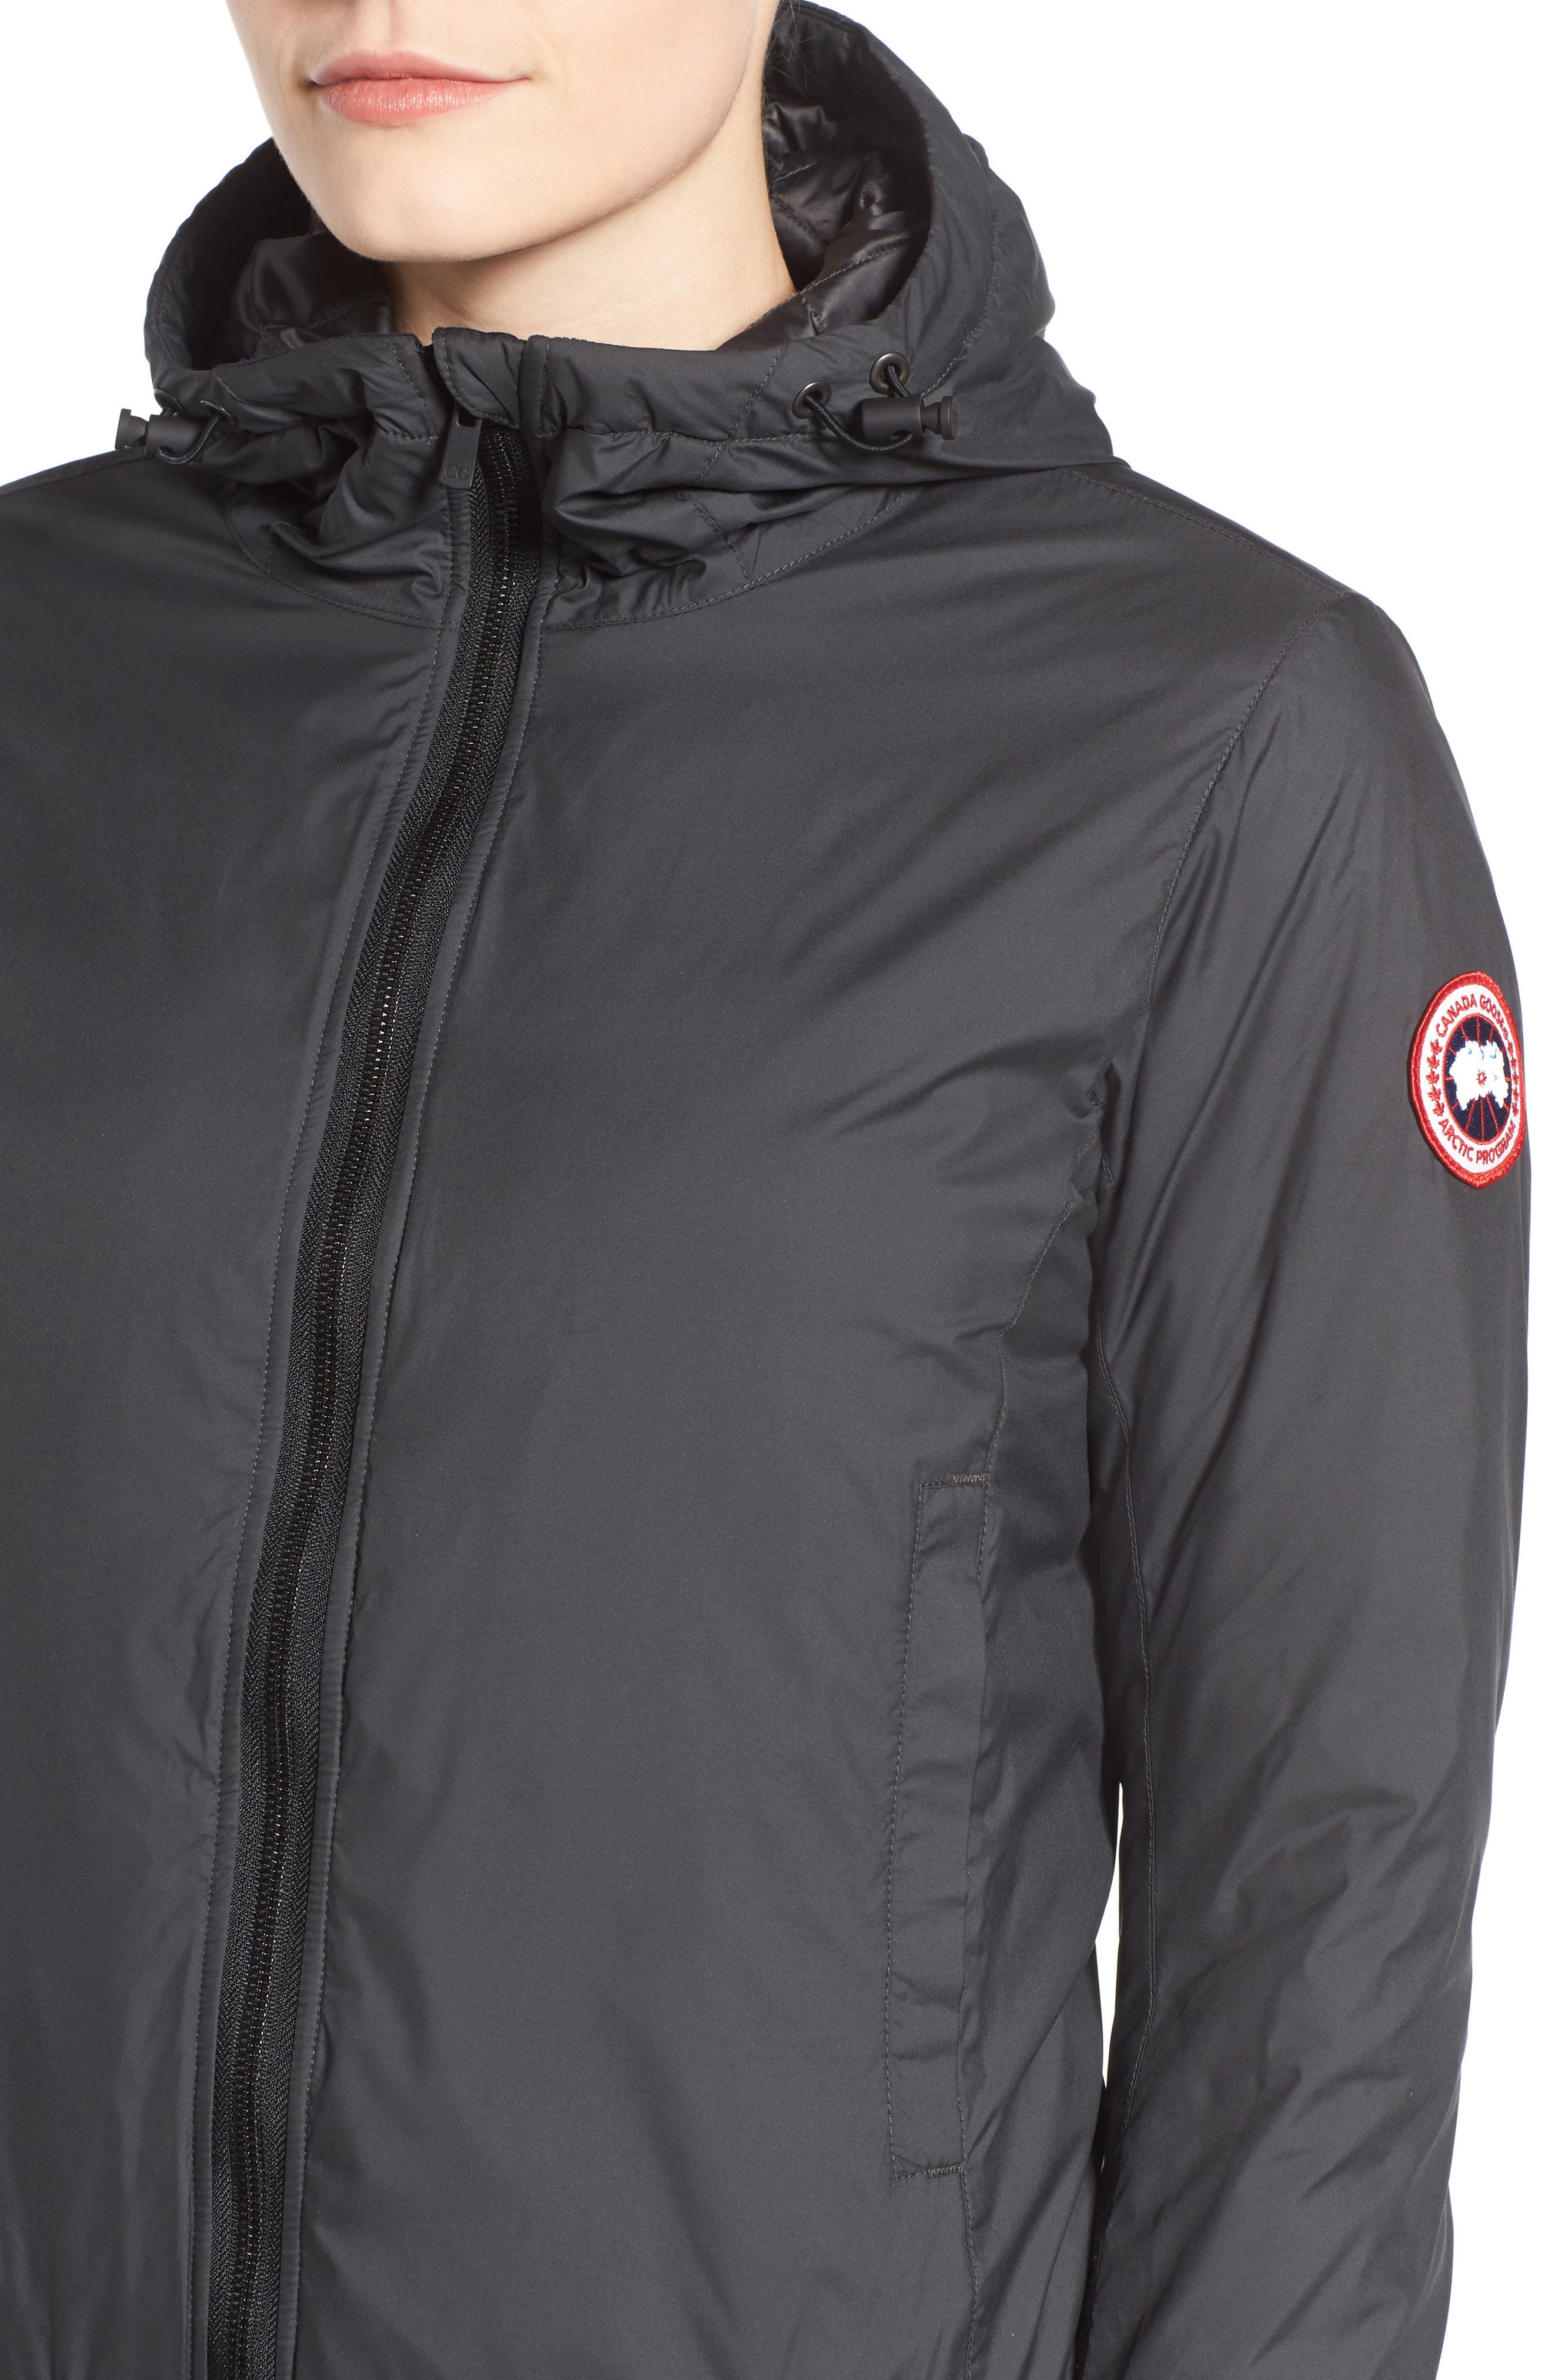 CANADA GOOSE, Dore Goose Down Hooded Jacket, Alternate thumbnail 5, color, BLACK